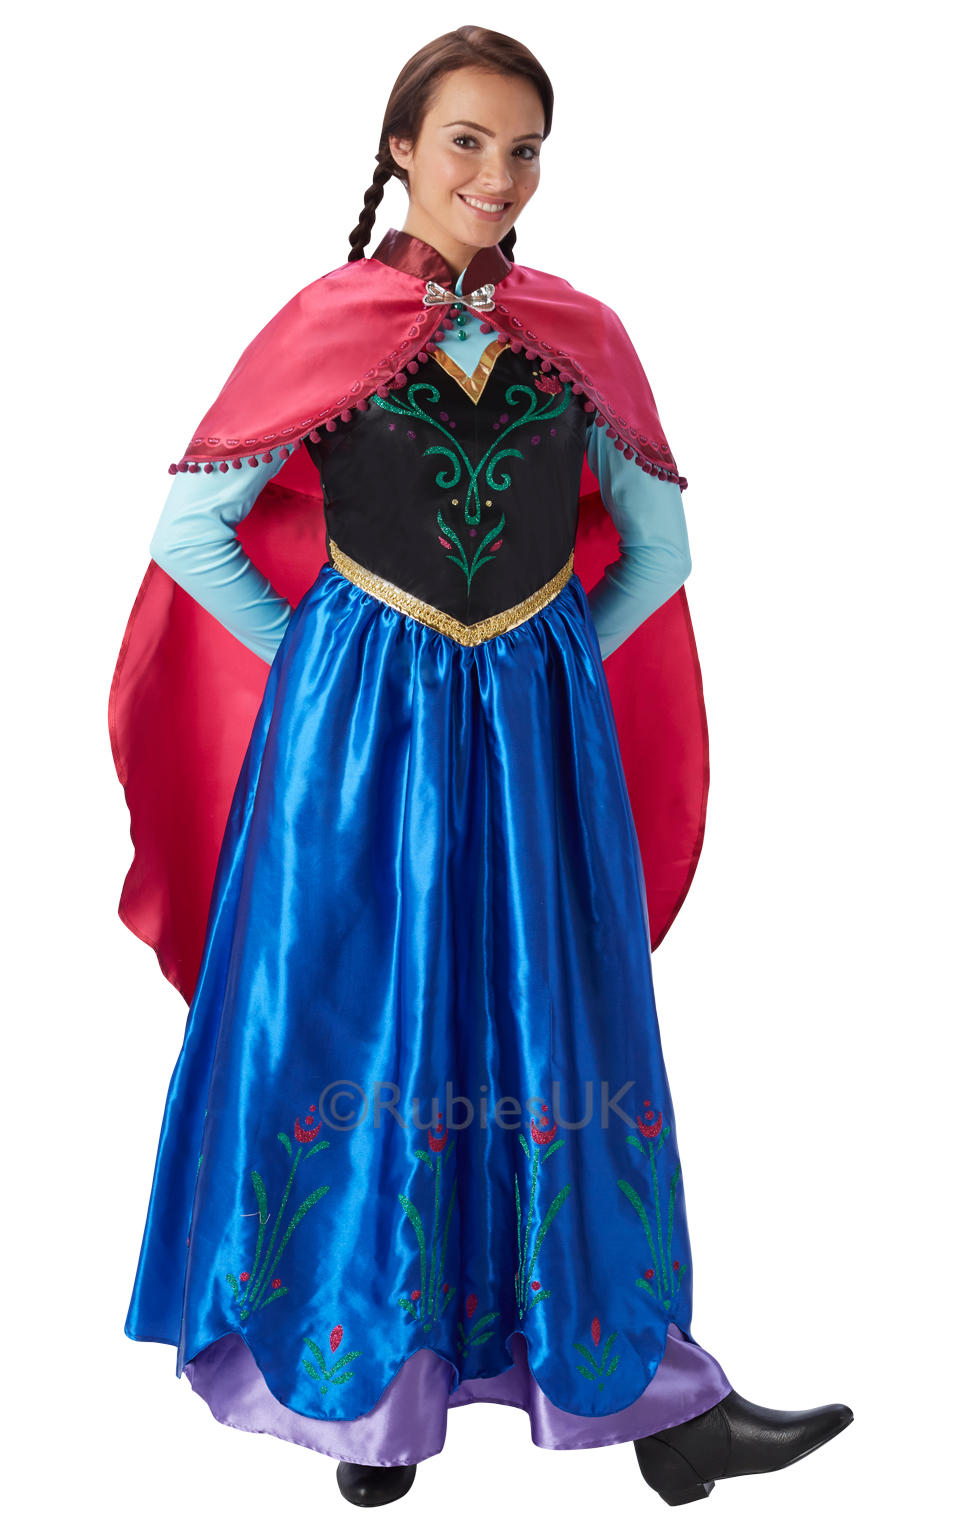 Simple Disney Cinderella Deluxe Blue Princess Costume Womens Fancy Dress Gown